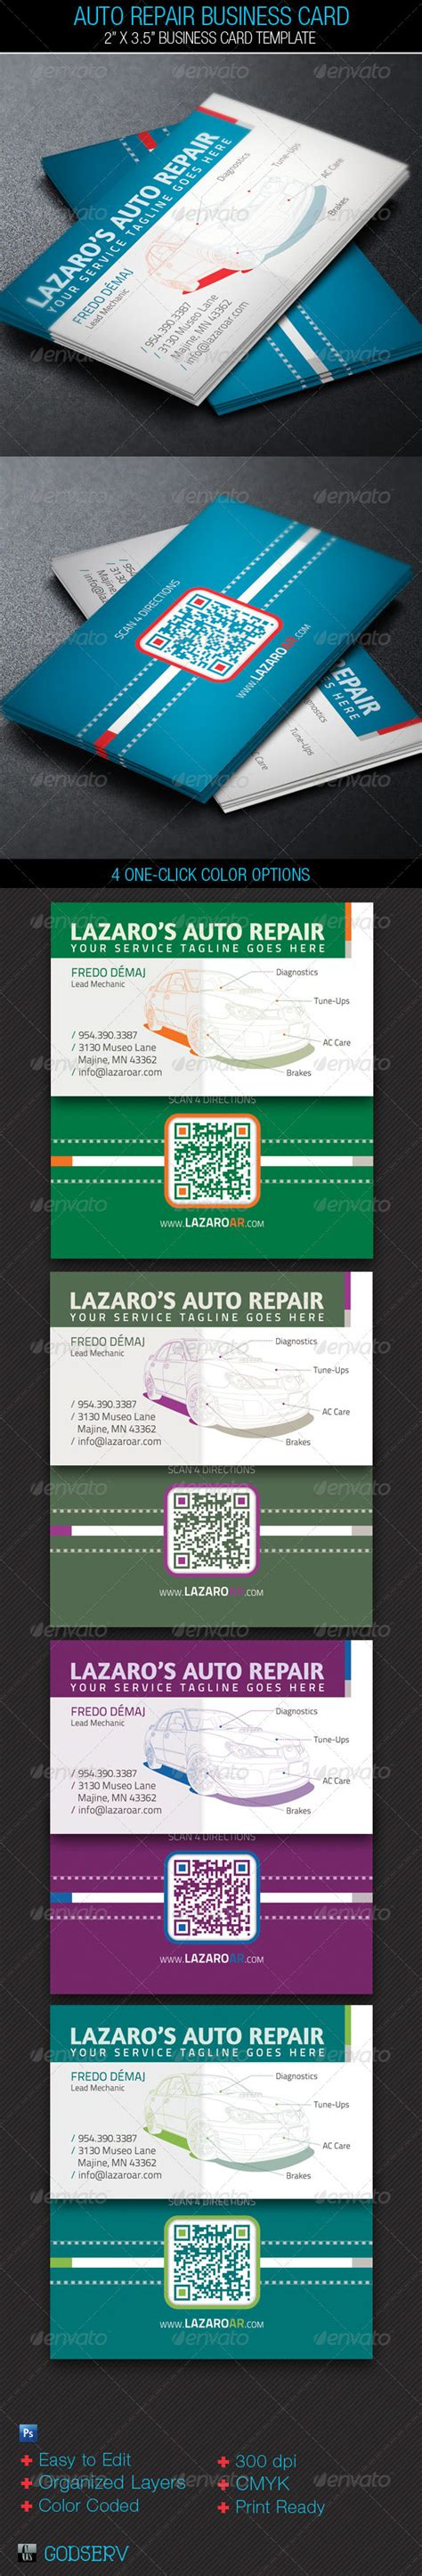 http graphicriver net item funeral service business card template 10998645 auto repair service business card template on behance